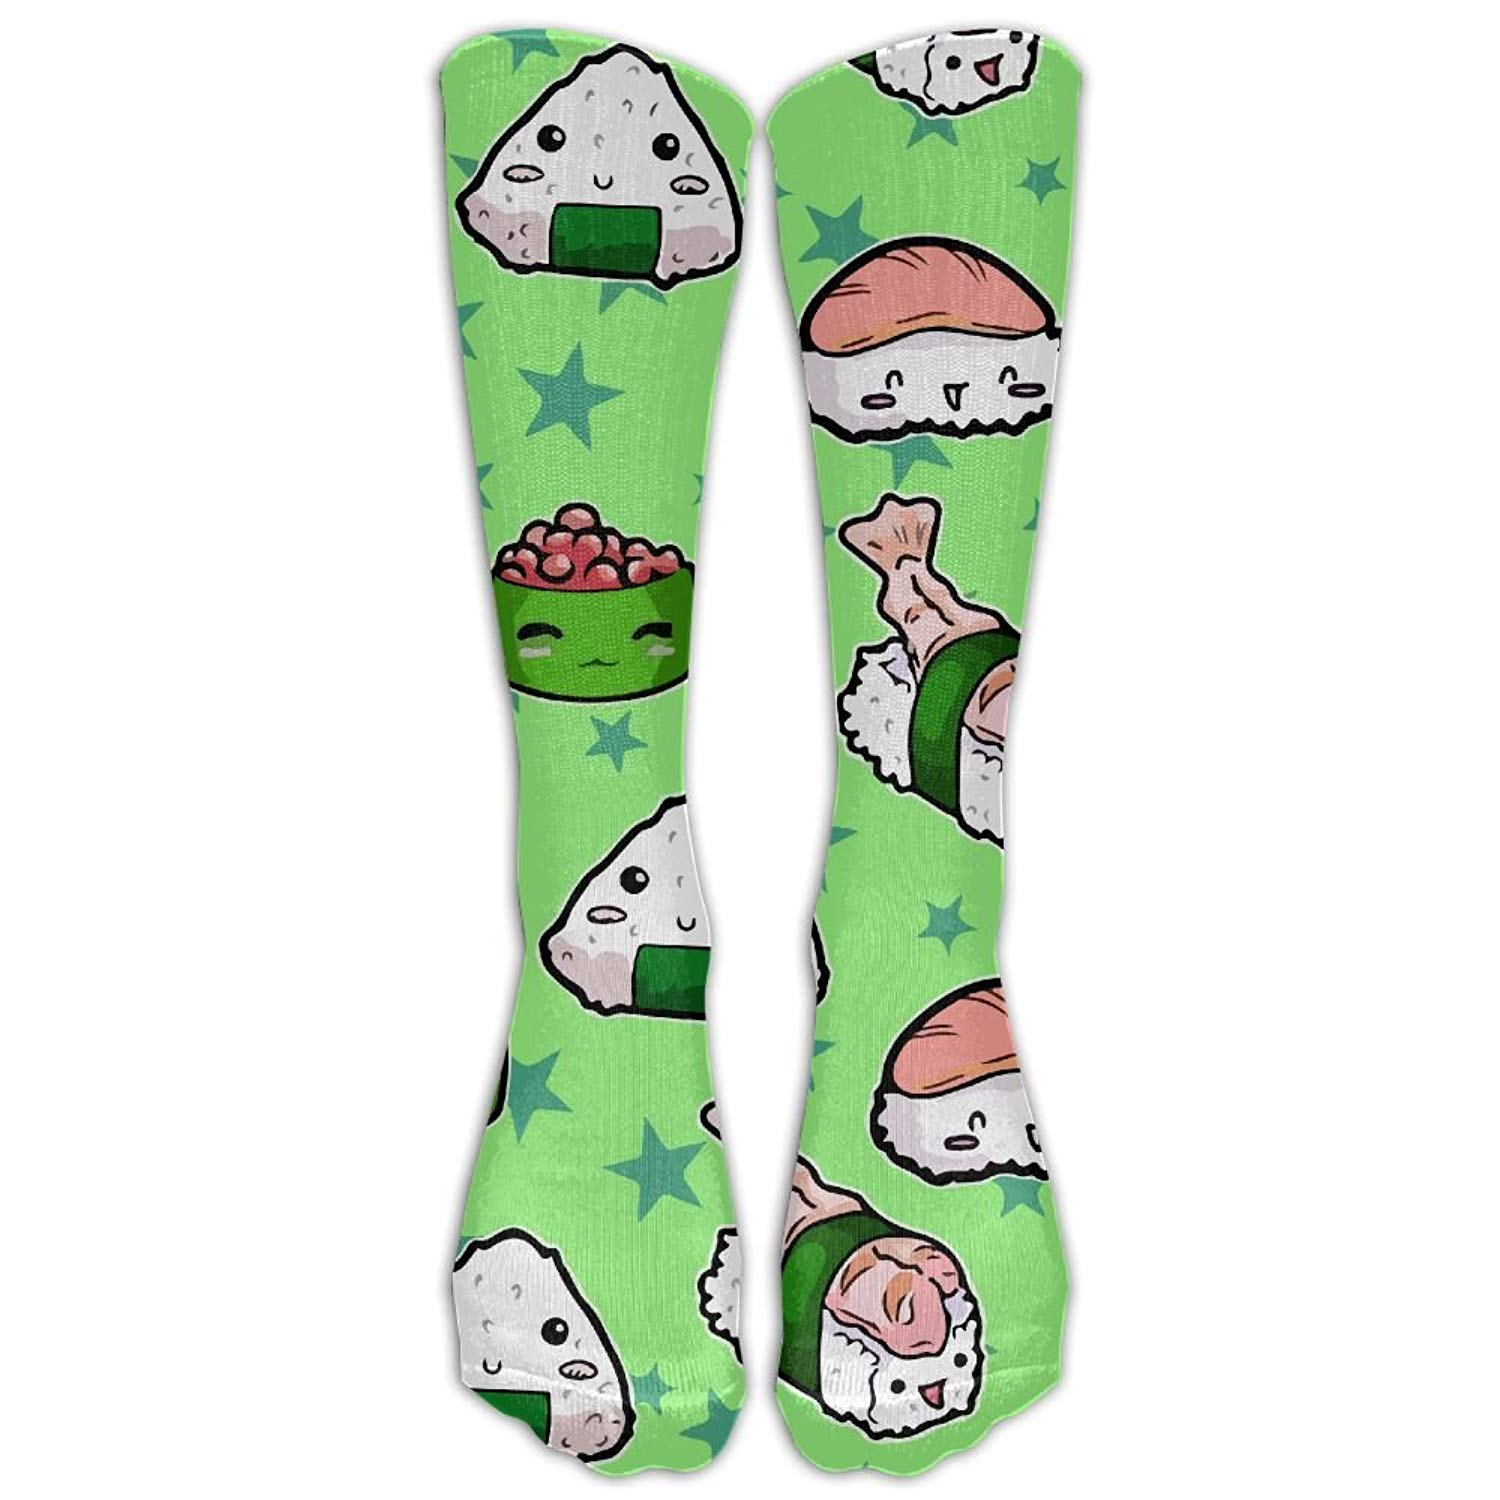 But why miss Men's Women's Novelty Cute Japanses Sushi Long Sock Athletic Calf High Crew Soccer Socks Sports 8723027216408